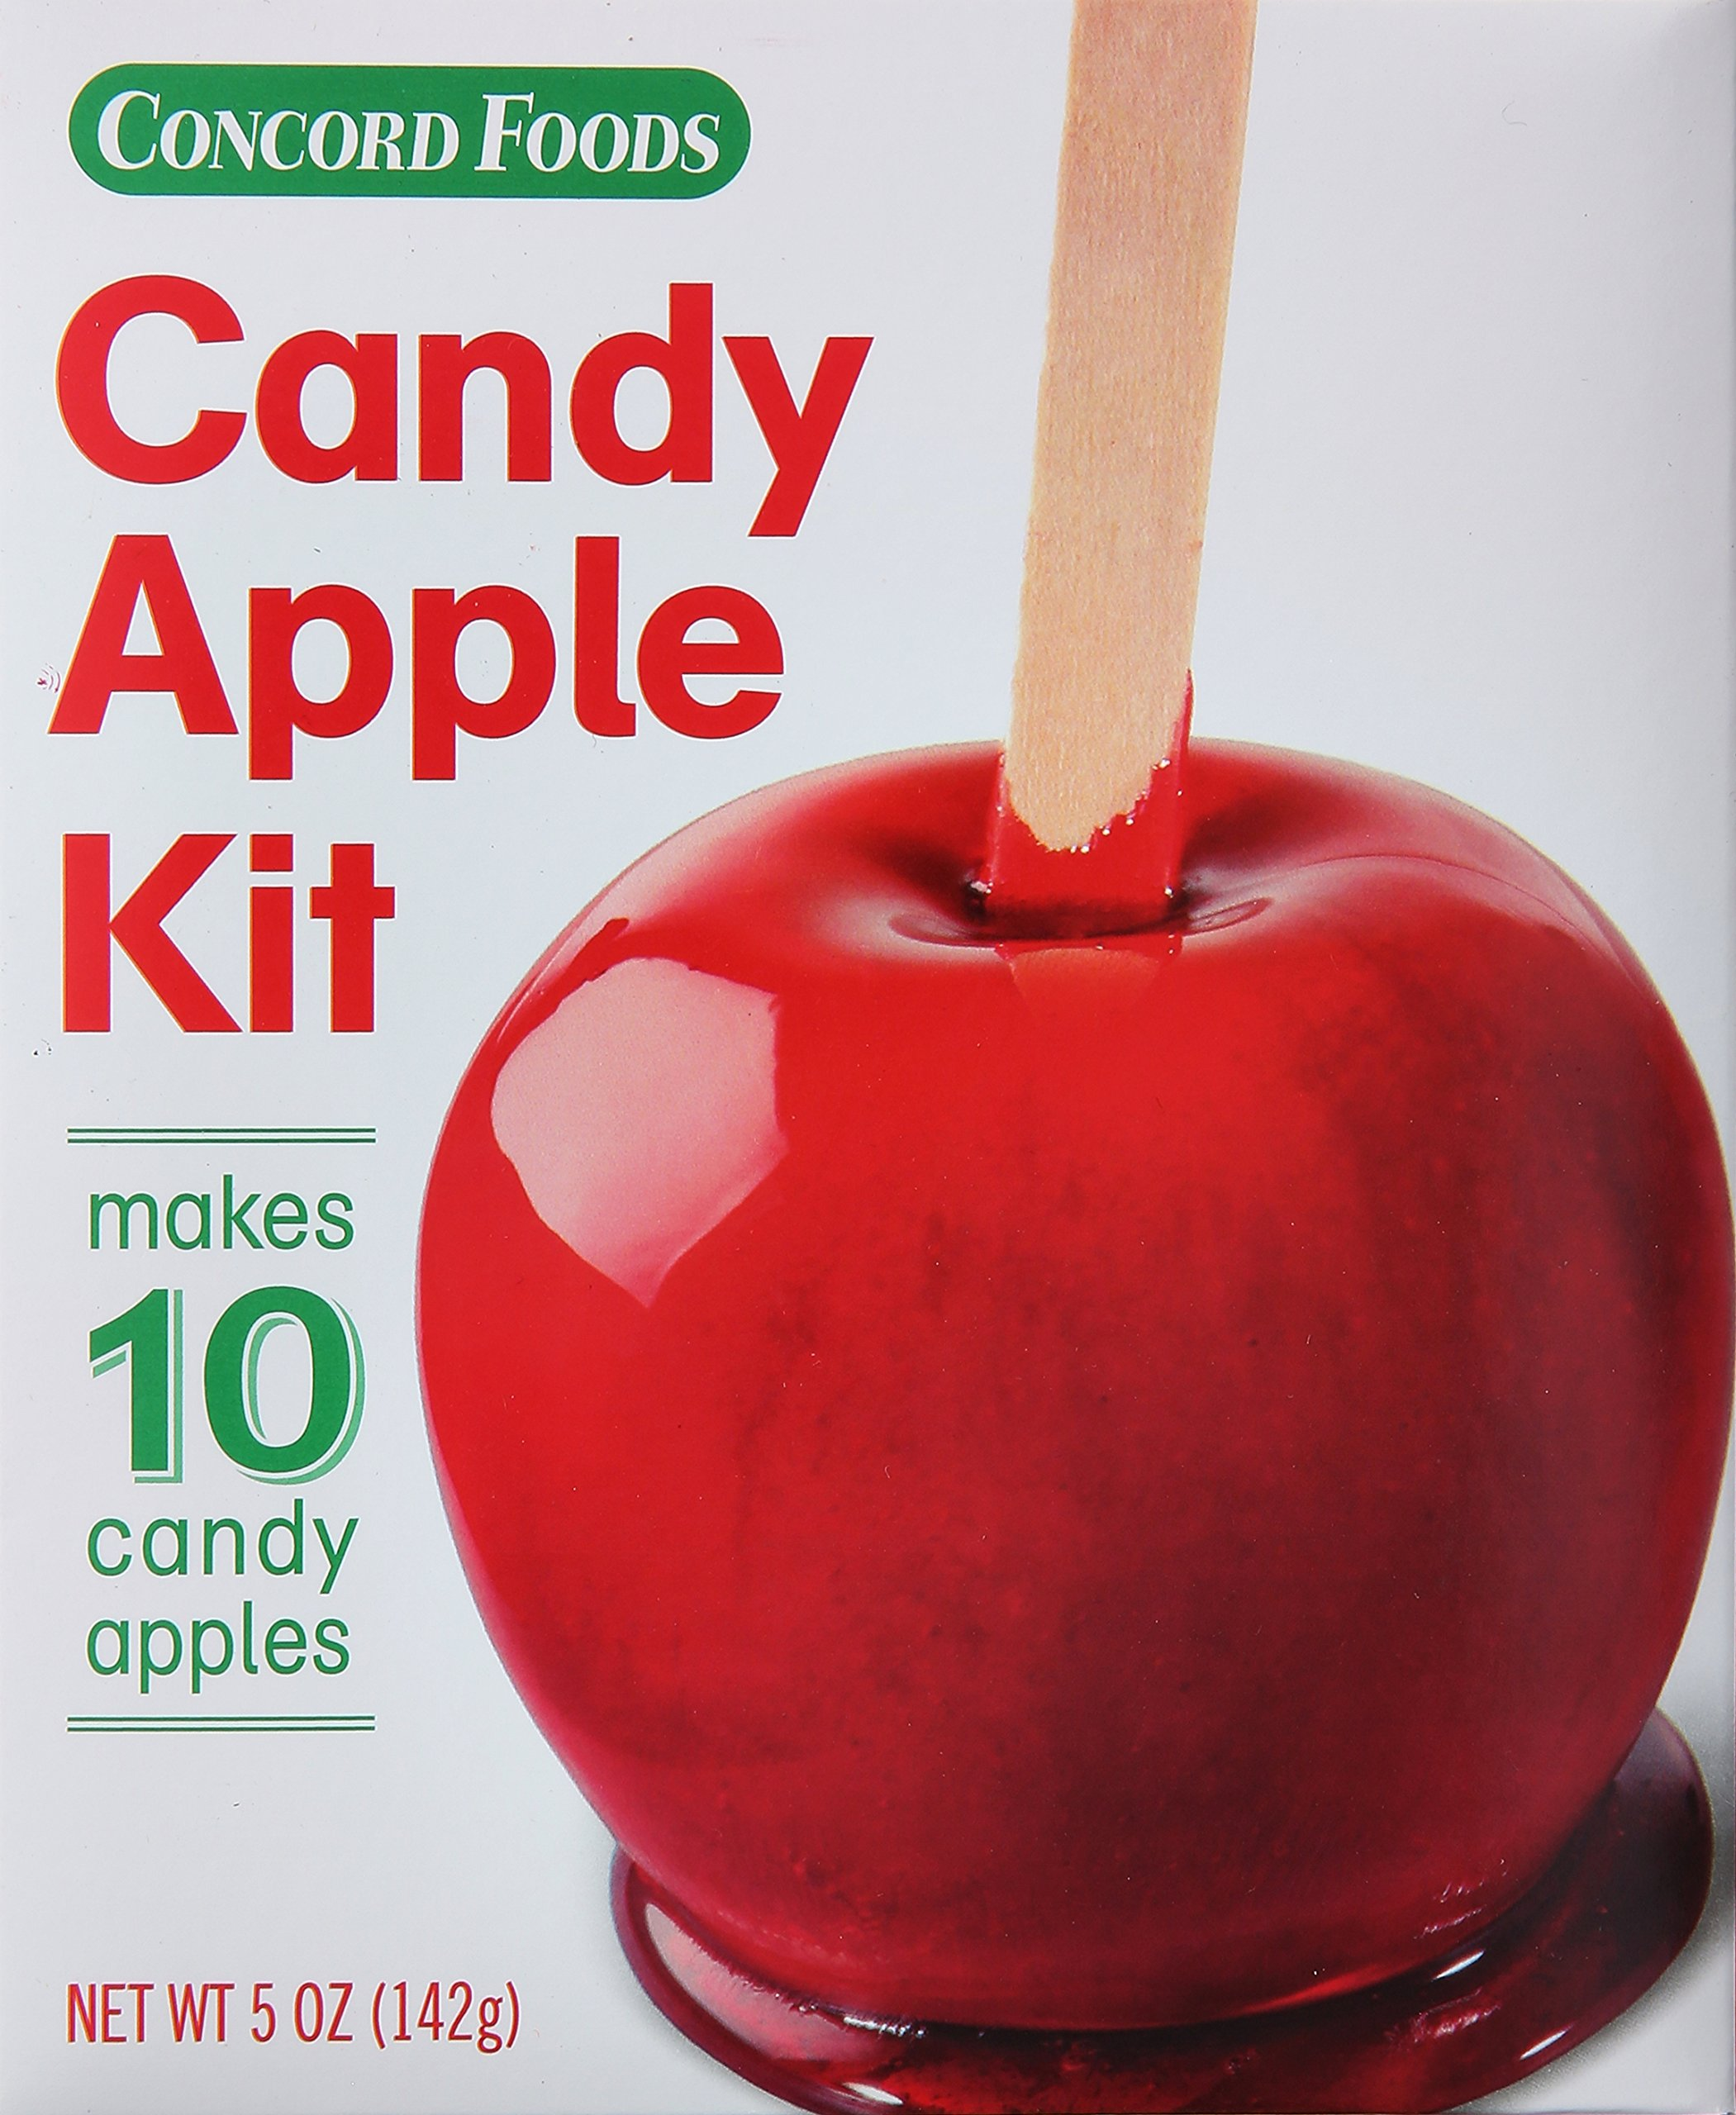 Concord Foods Candy Apple Kit, 5 oz